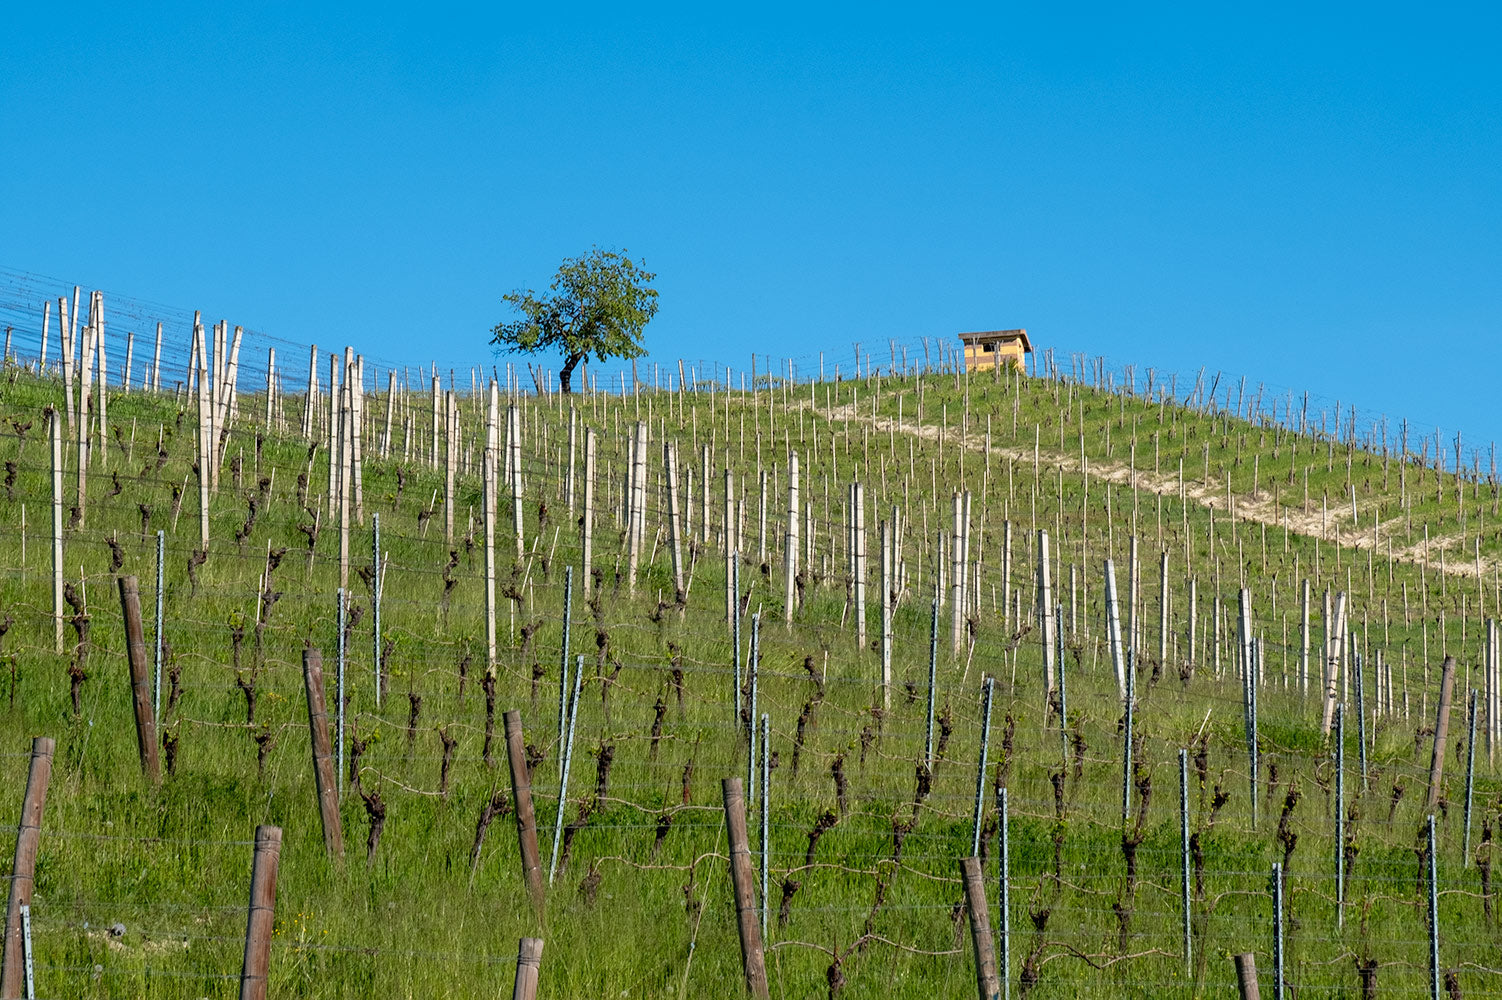 A hillside of young vines in Piedmont with a tree and a small house on the summit, below a clear blue sky.